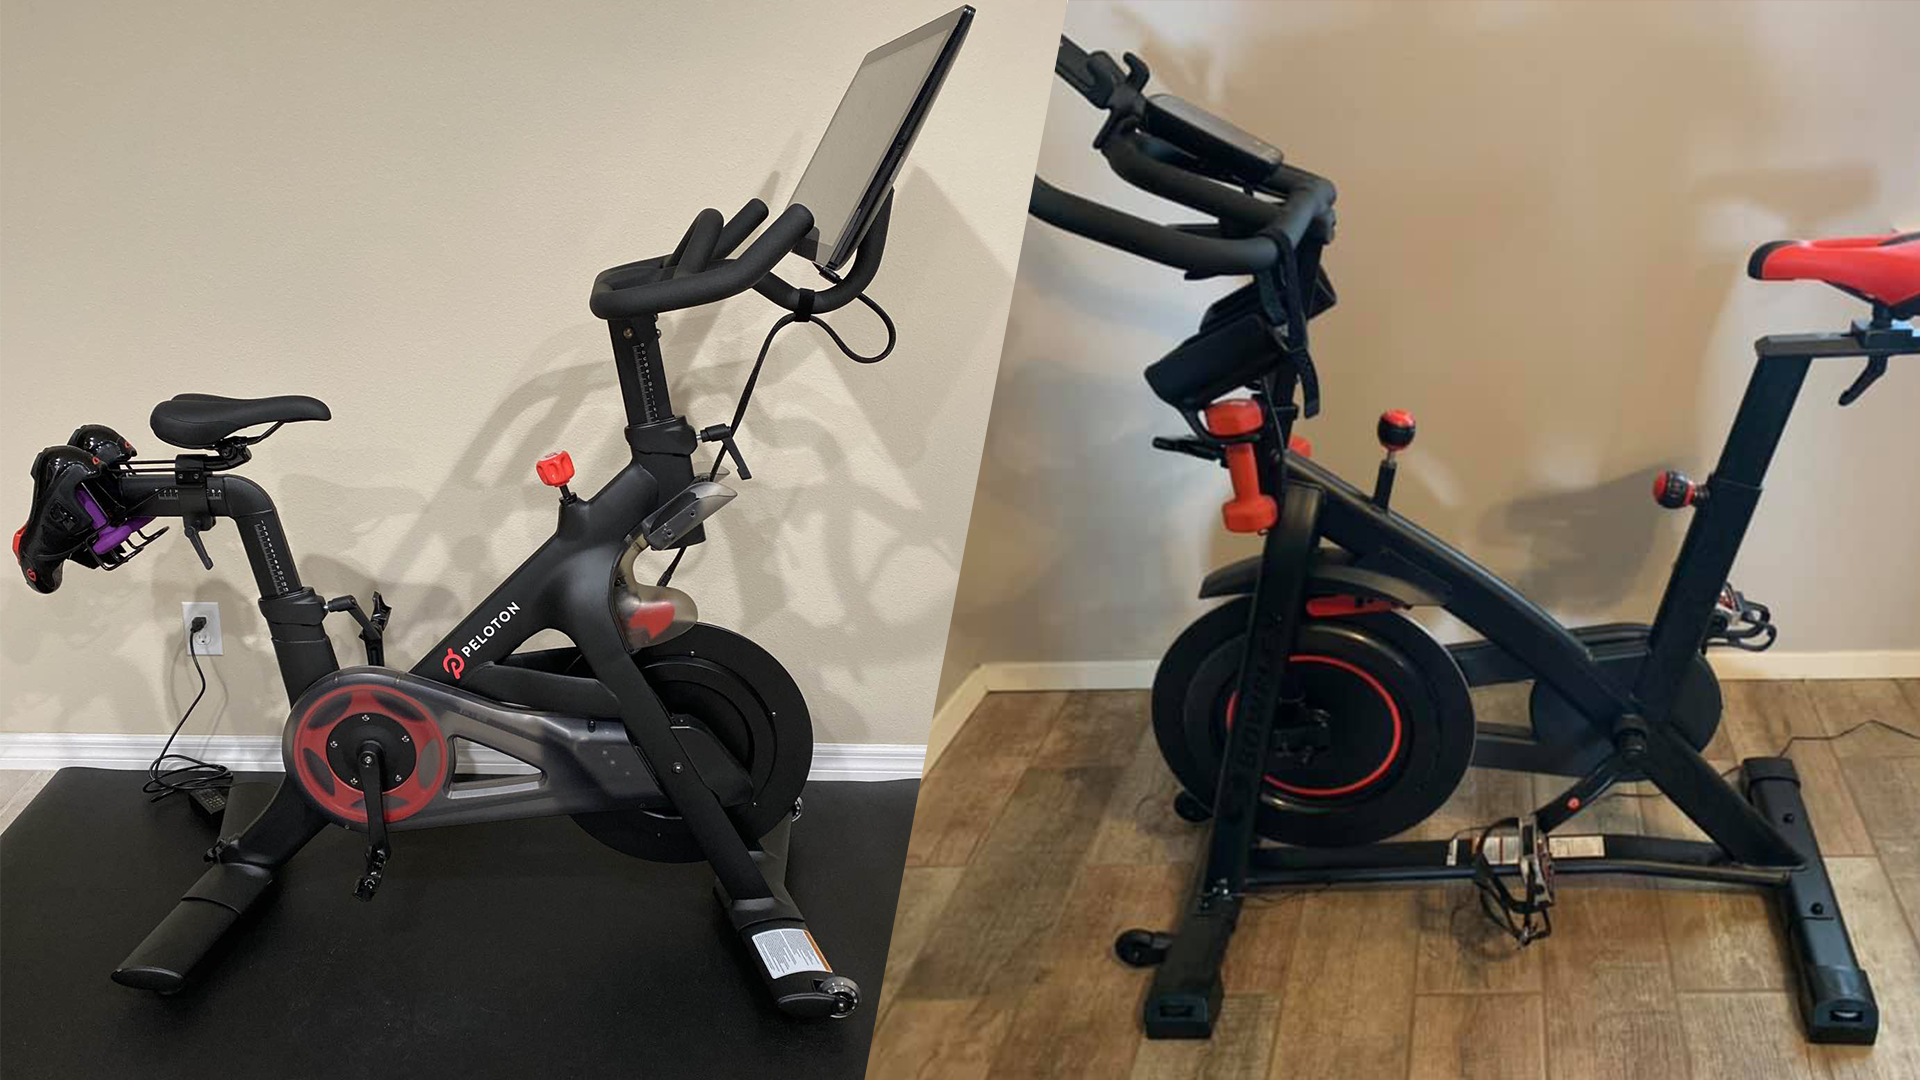 Detailed breakdown and comparison of the Peloton and the Bowflex C6